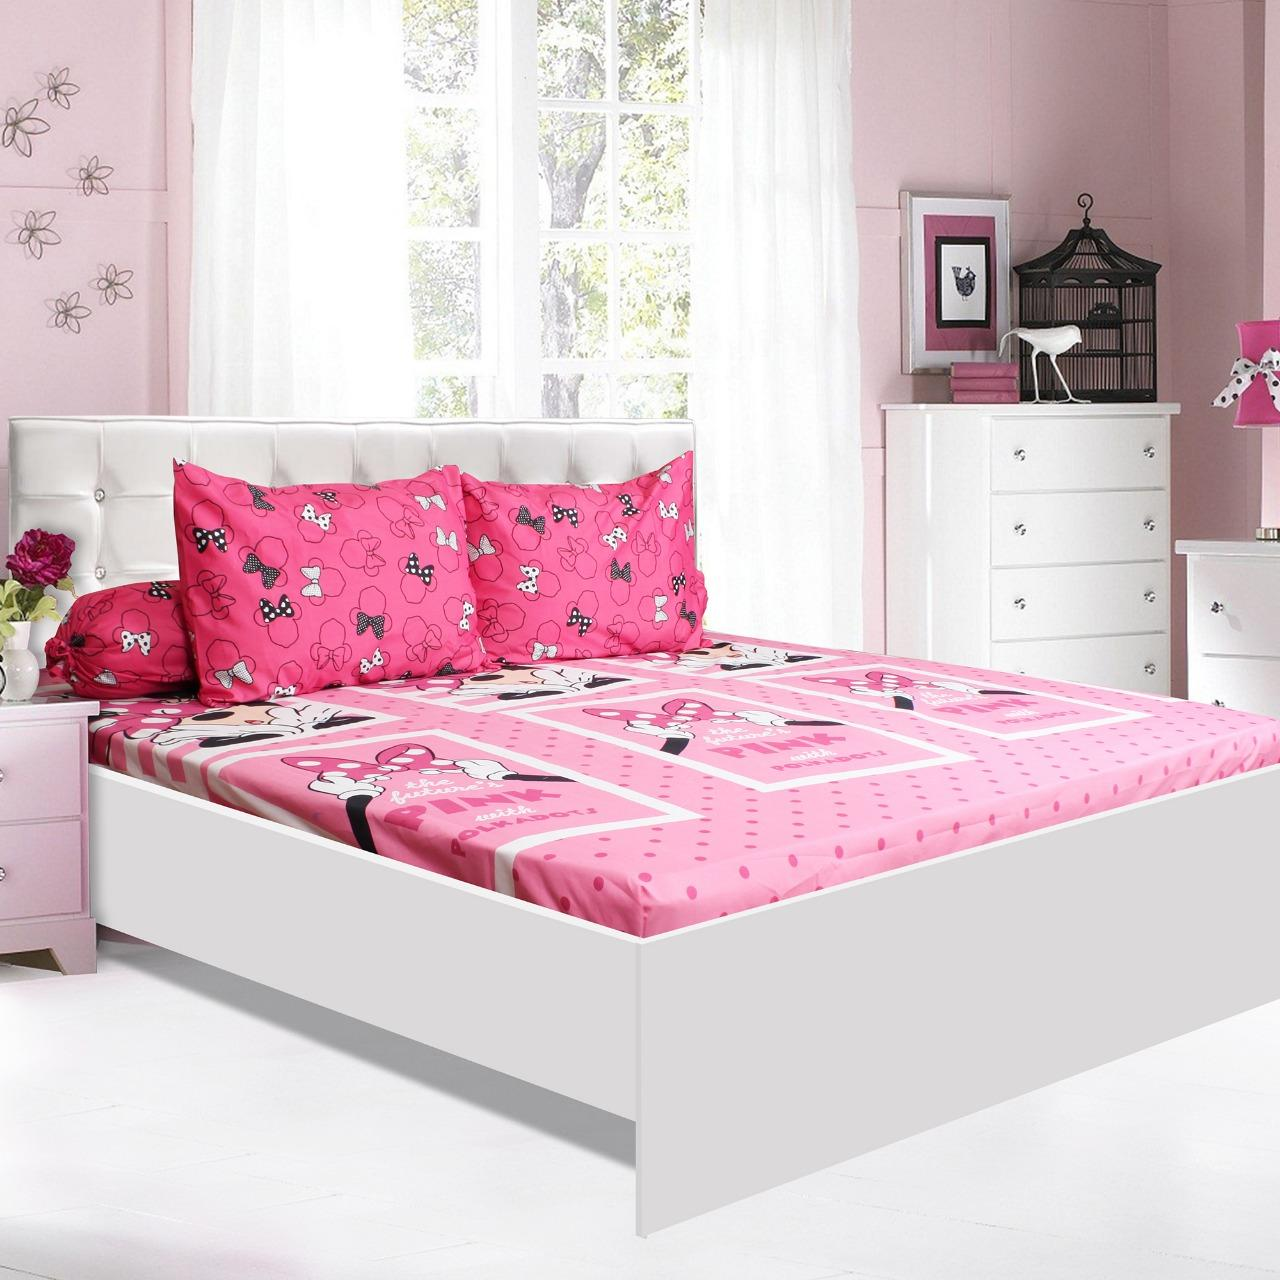 Sprei CALIFORNIA Motif DISNEY MINNIE PINK MINIE King Size 180 x 200 cm